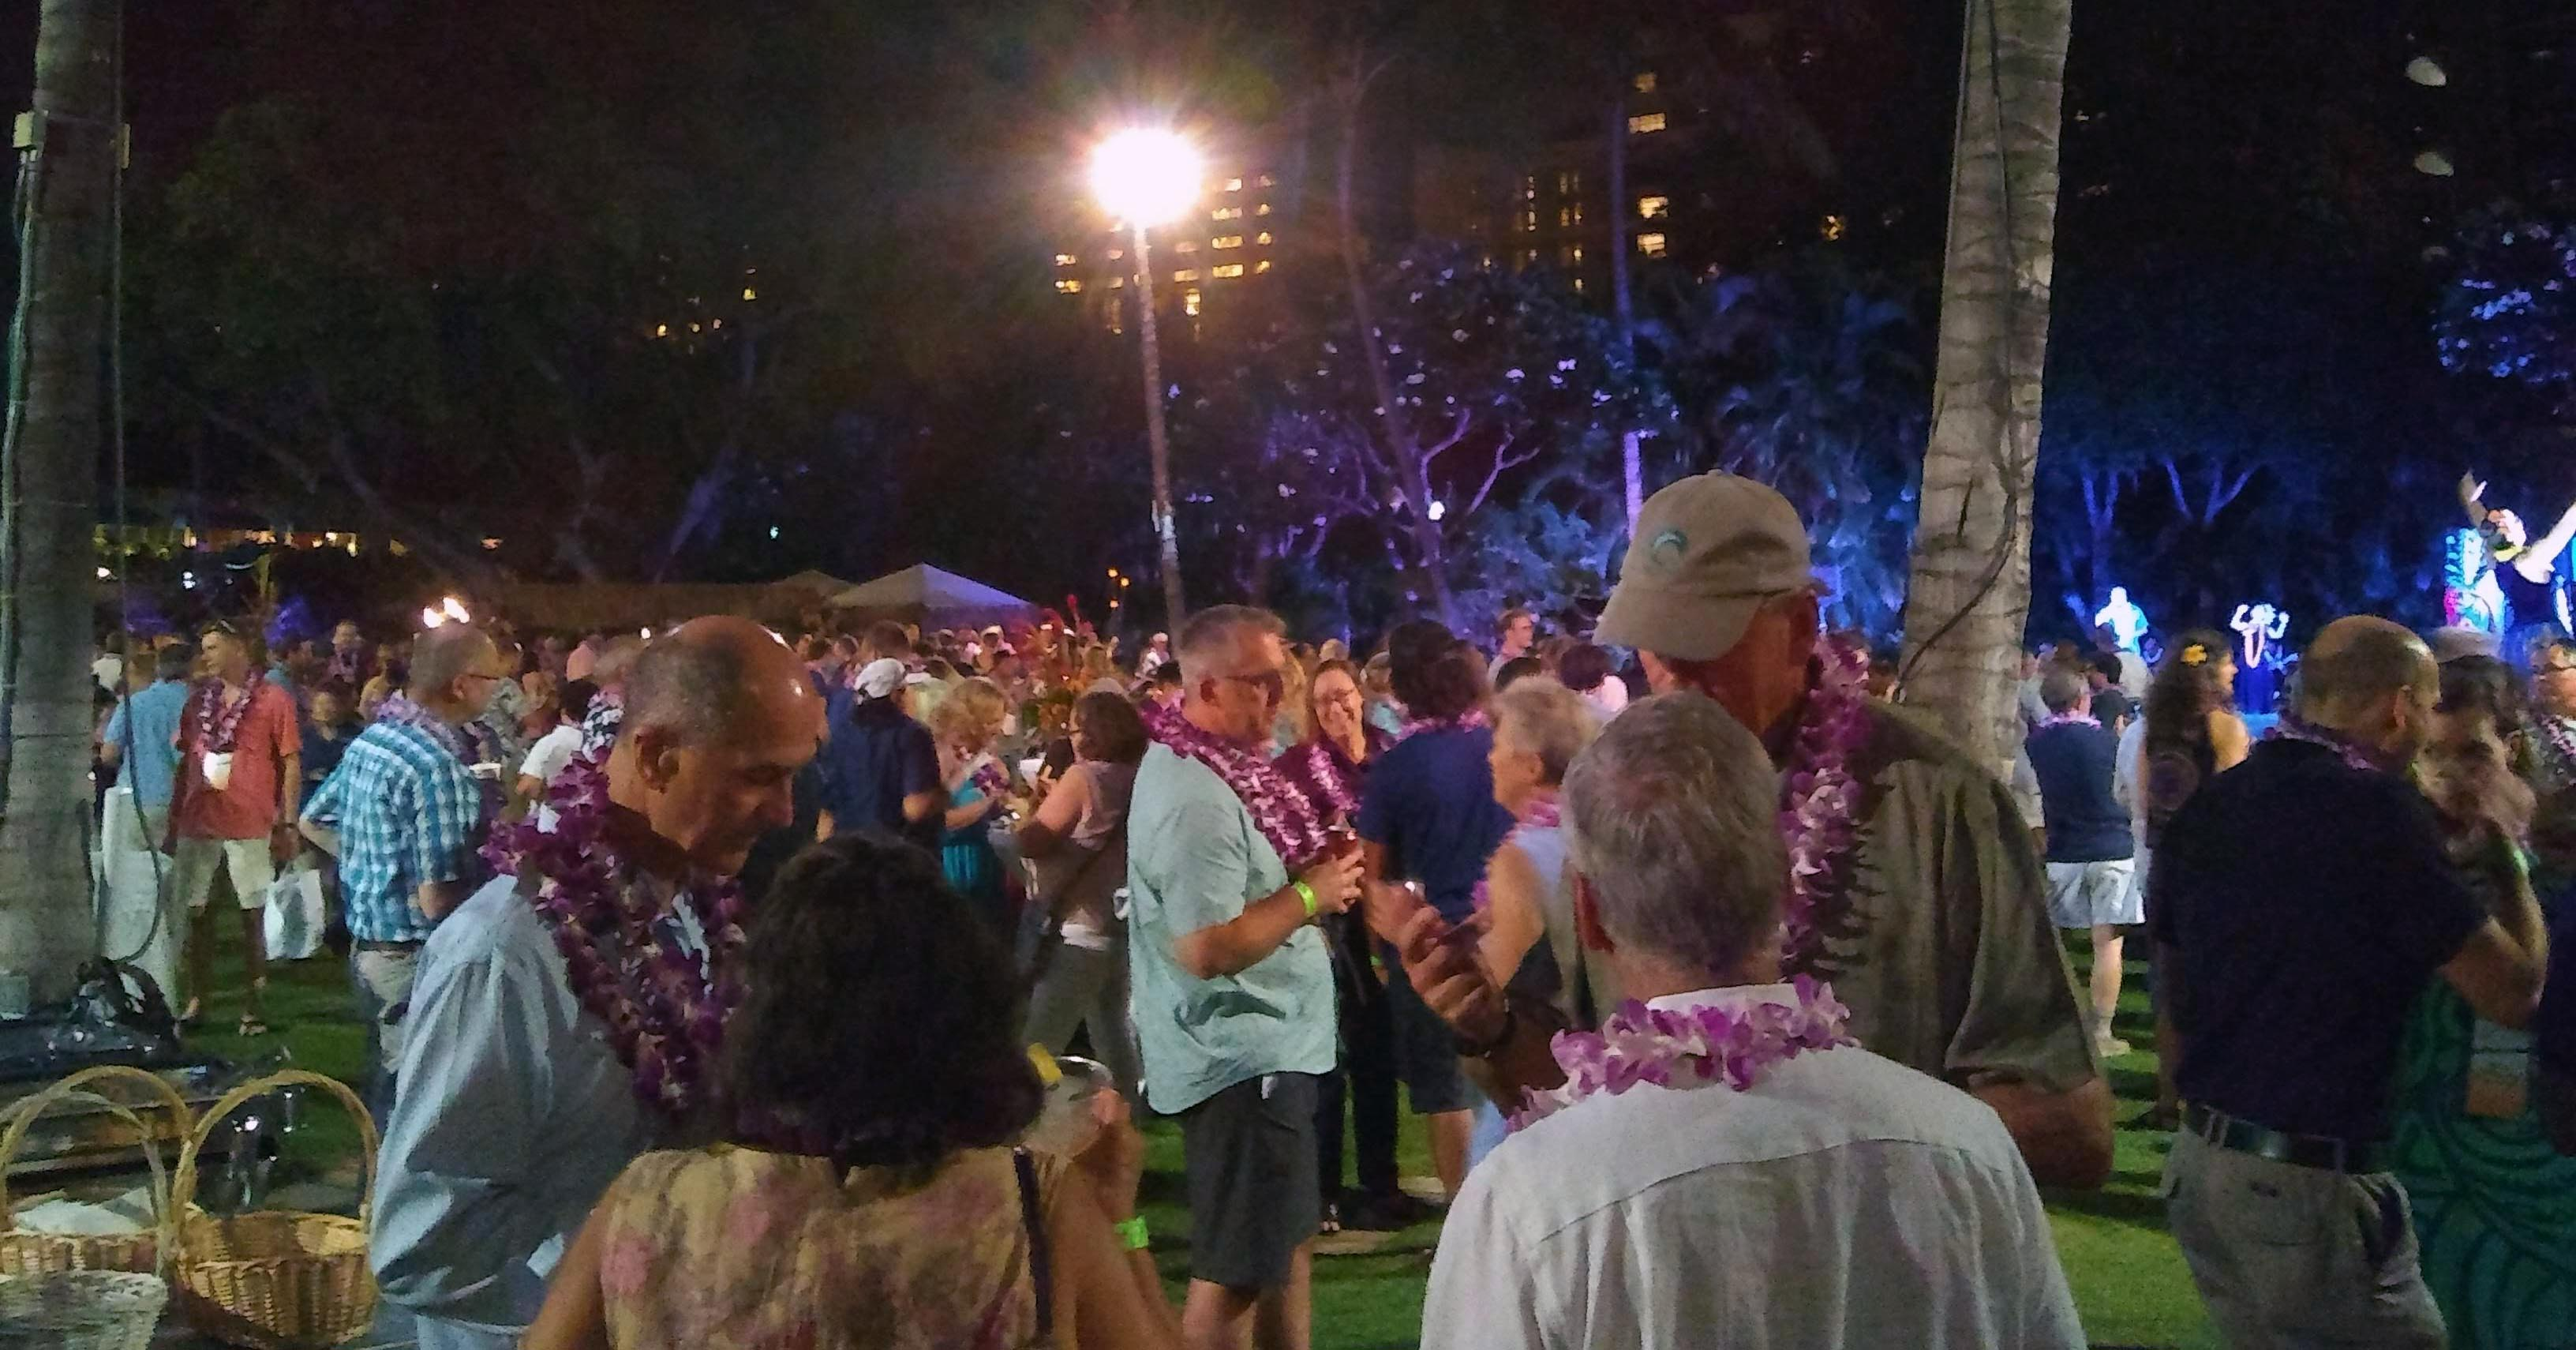 Hundreds of attendees at the OceanObs '19 luau. Dr. Frank Muller-Karger was sporting multiple leis as he took in the island spirit.